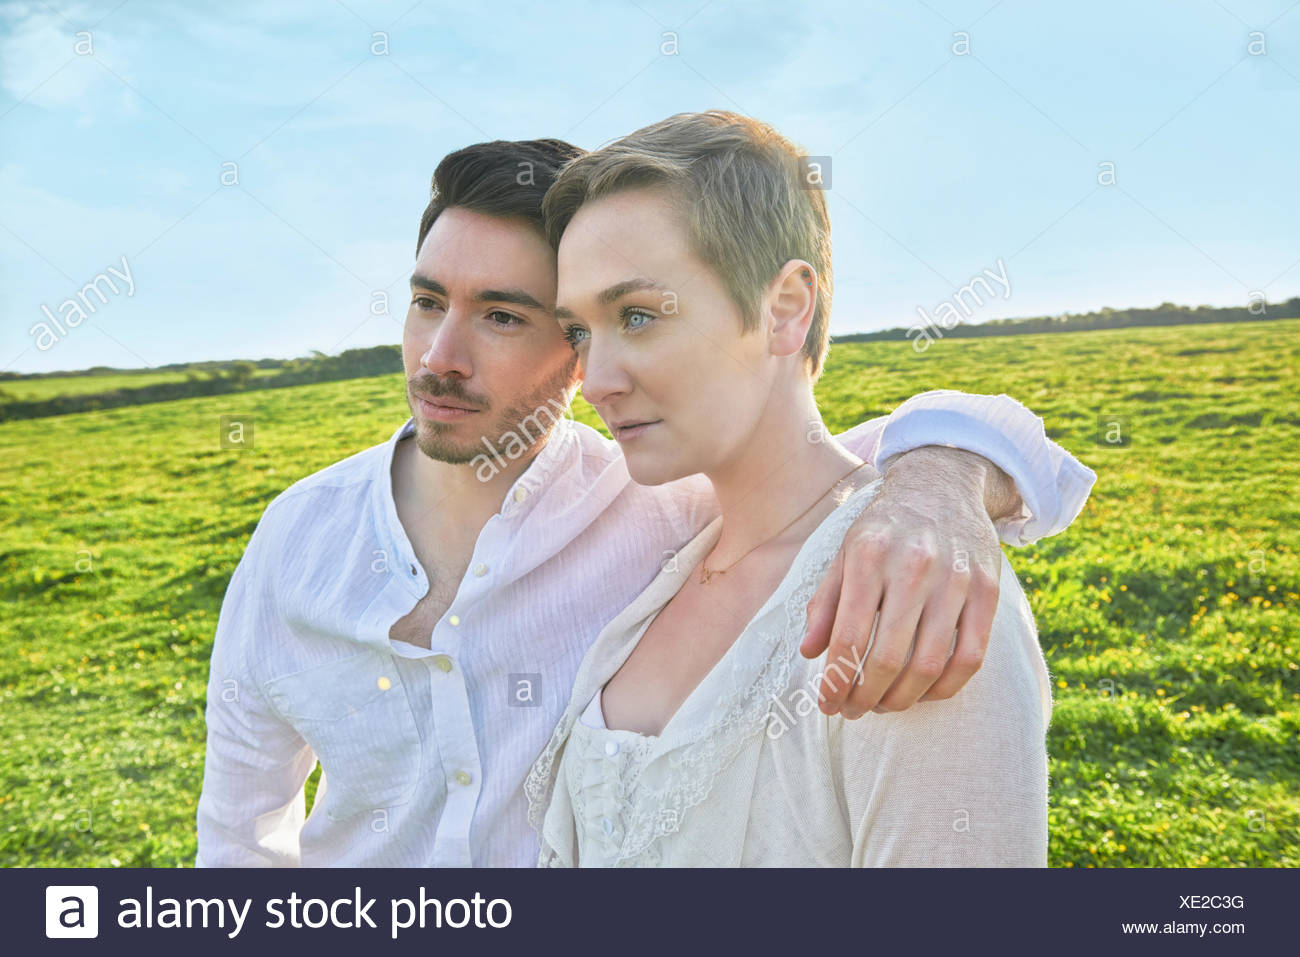 Young couple gazing in field - Stock Image